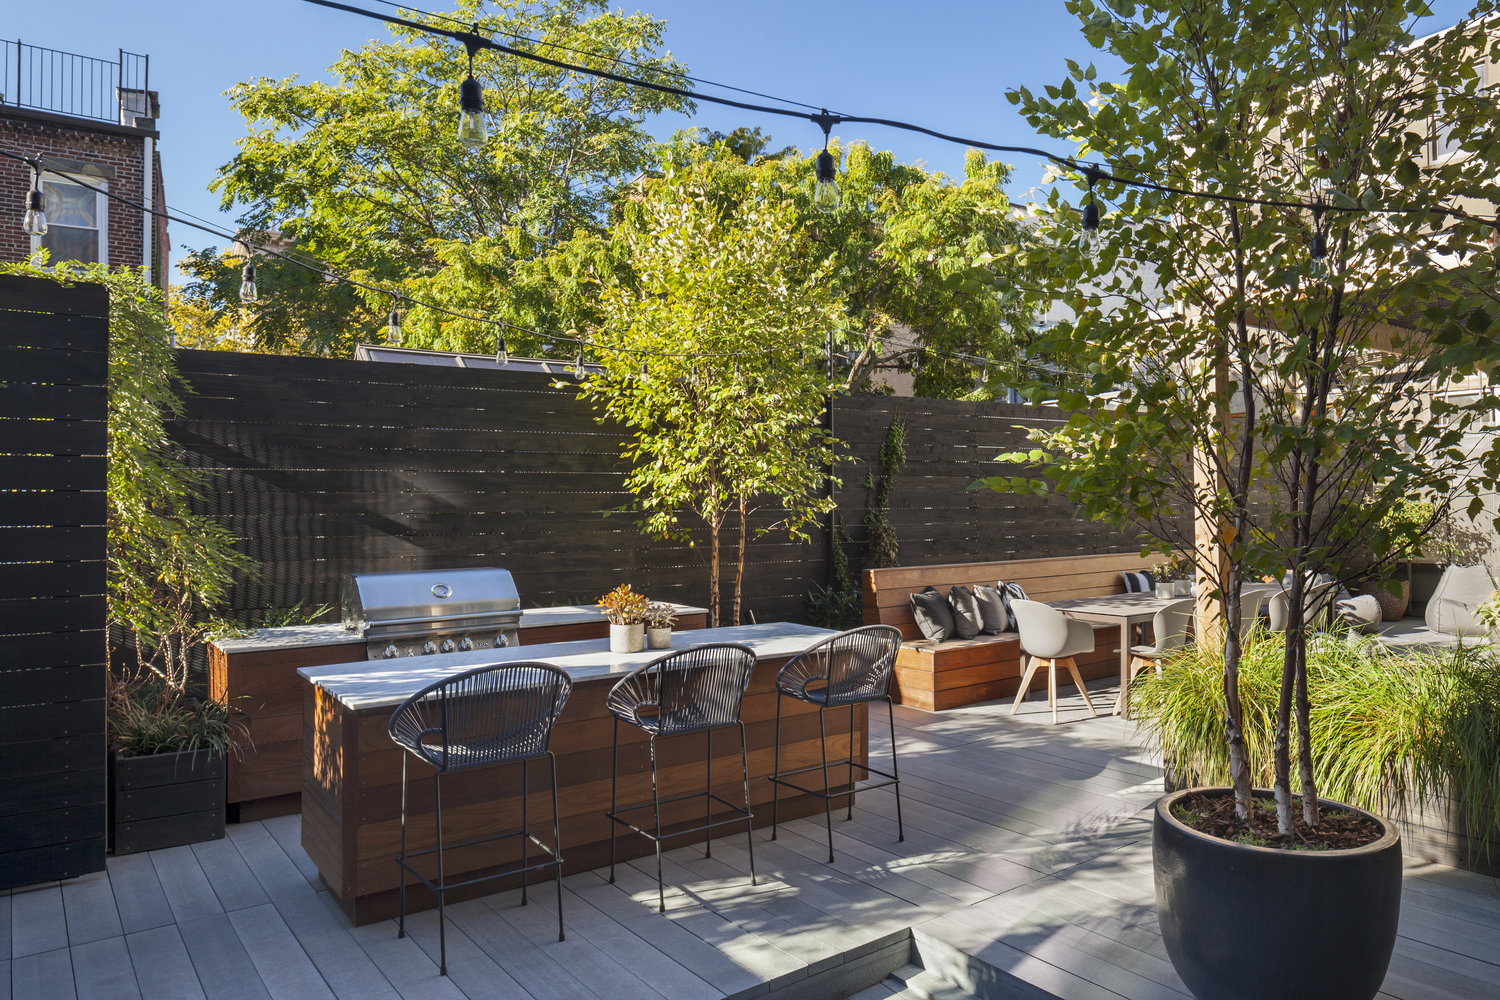 Top 20 Outdoor Kitchen Designs and Costs – Home Improvement Advice ...